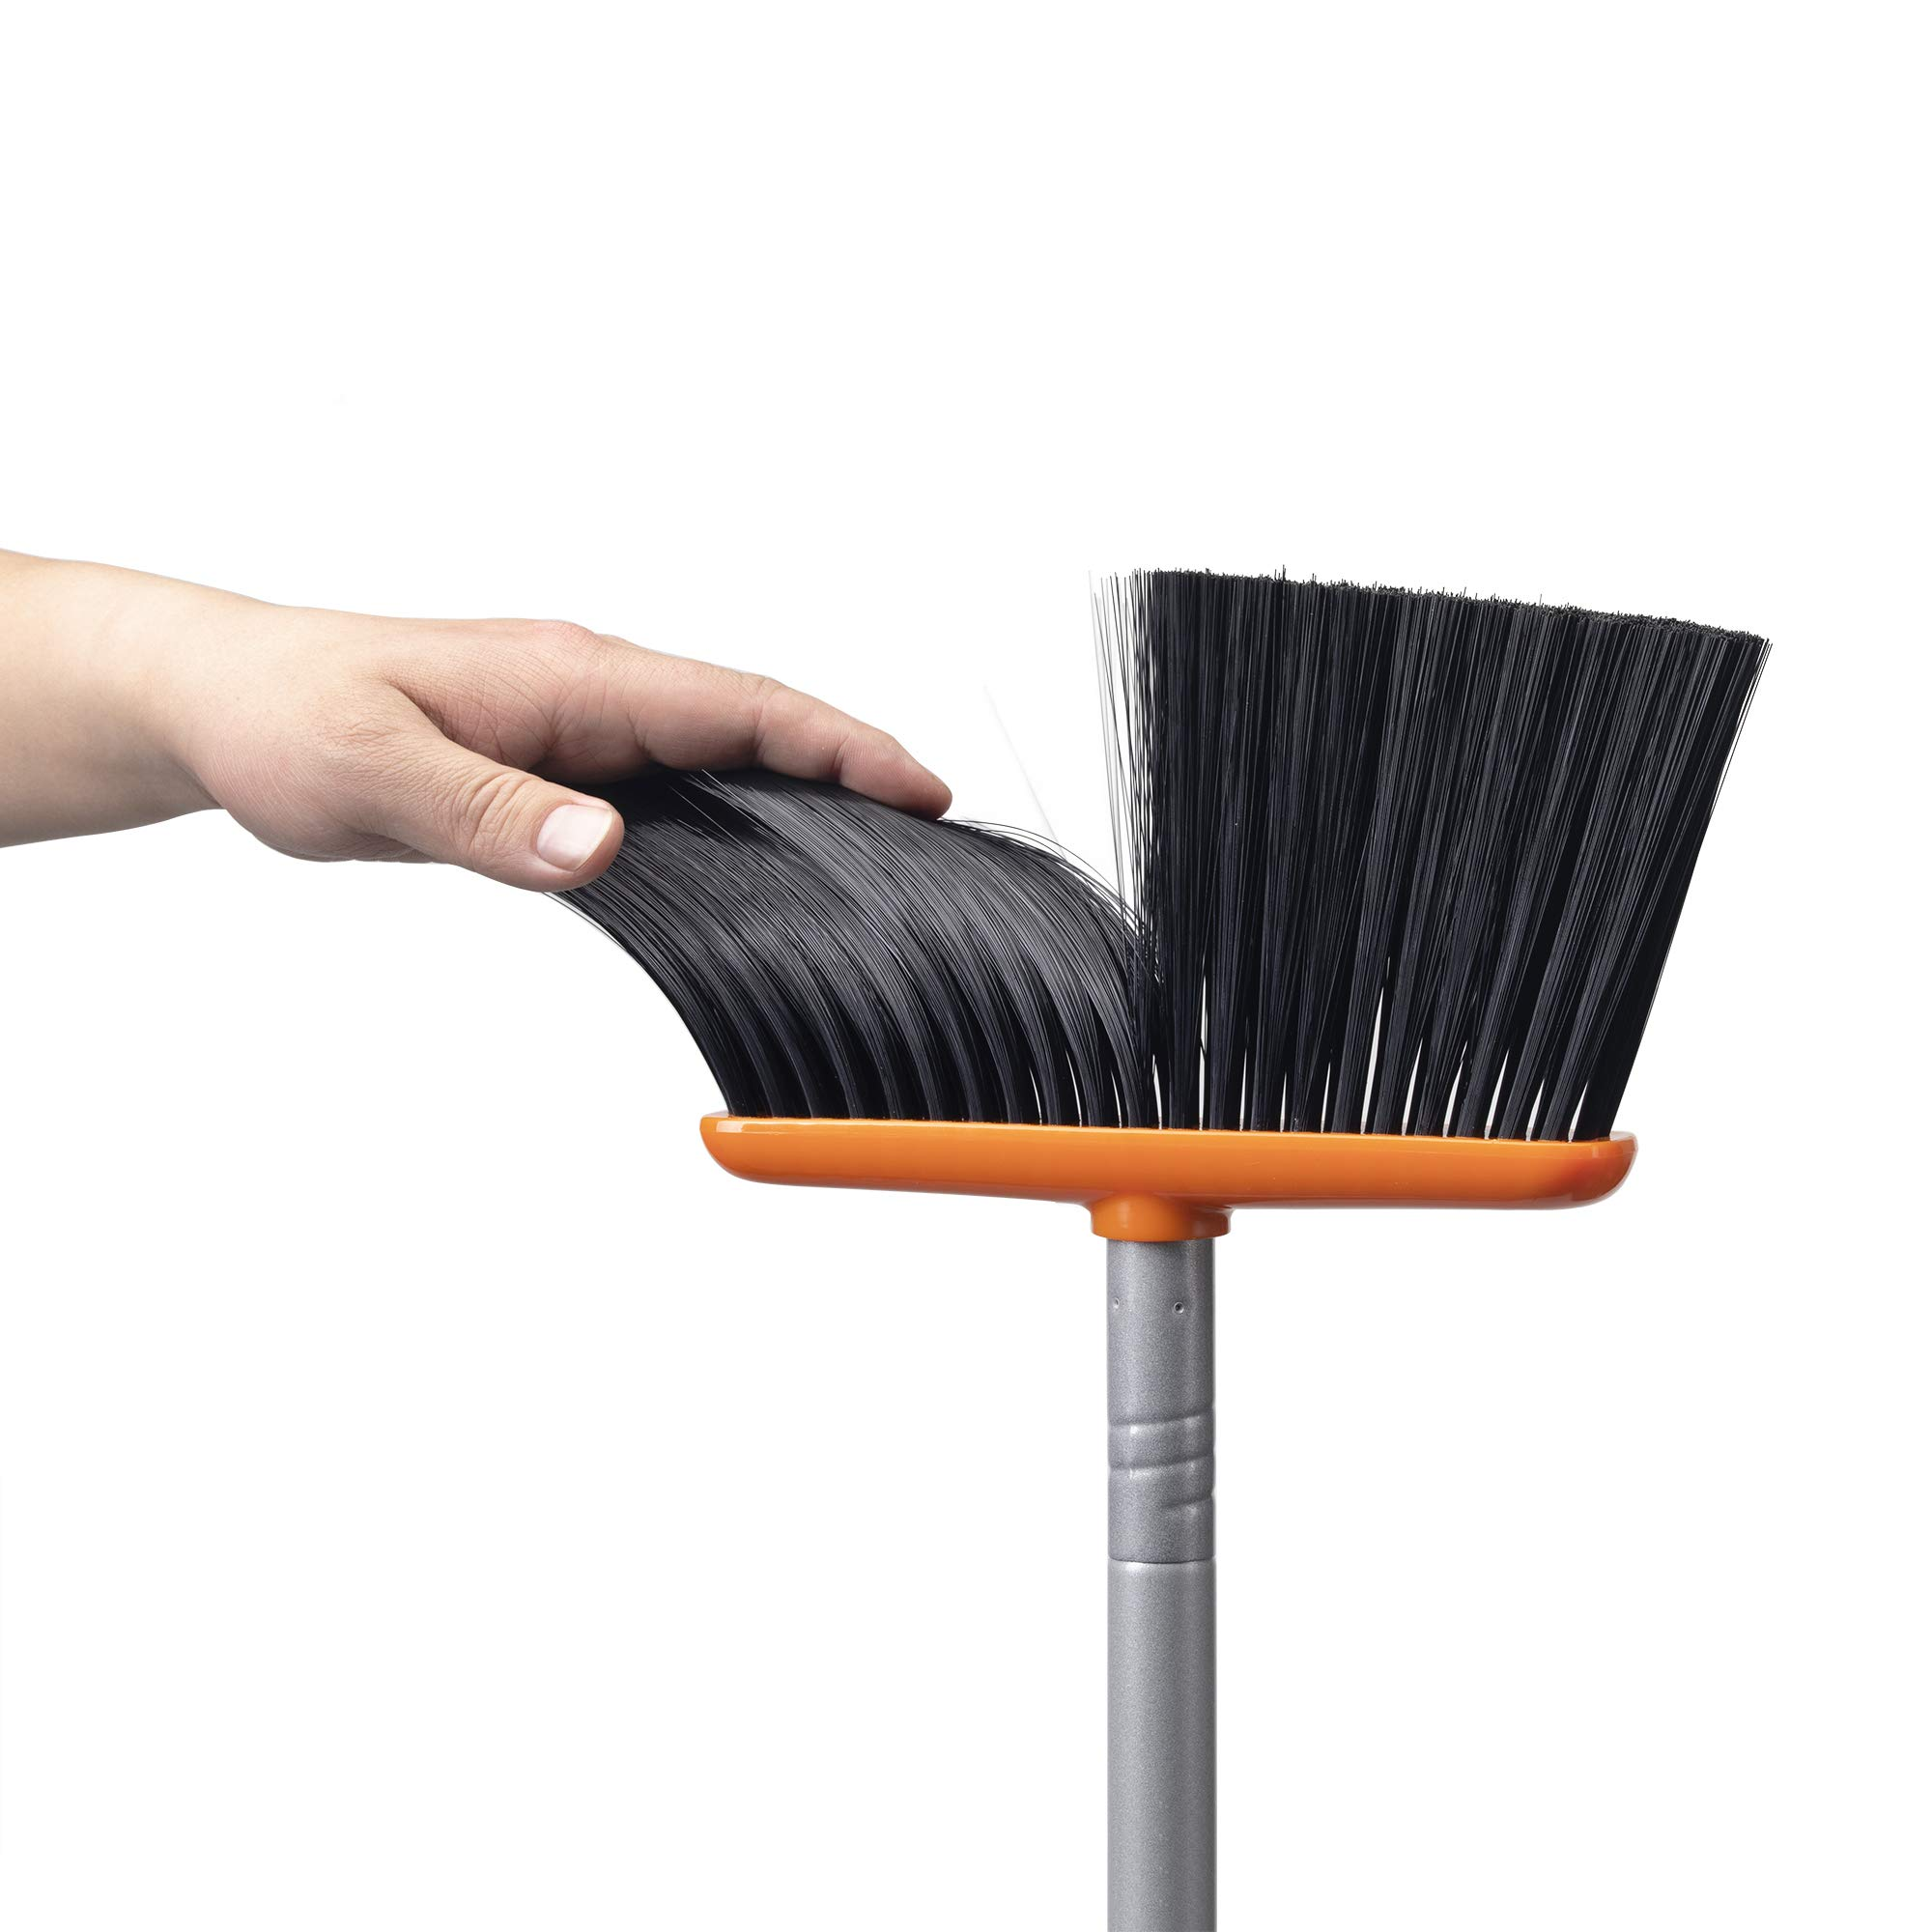 TooToo Broom and Dustpan Set, Sweep Set, Upright Broom and Dustpan Combo with 40''/54'' Long Extendable Handle for Household Cleaning Sweeping, Orange and Dark Grey by TooToo (Image #5)